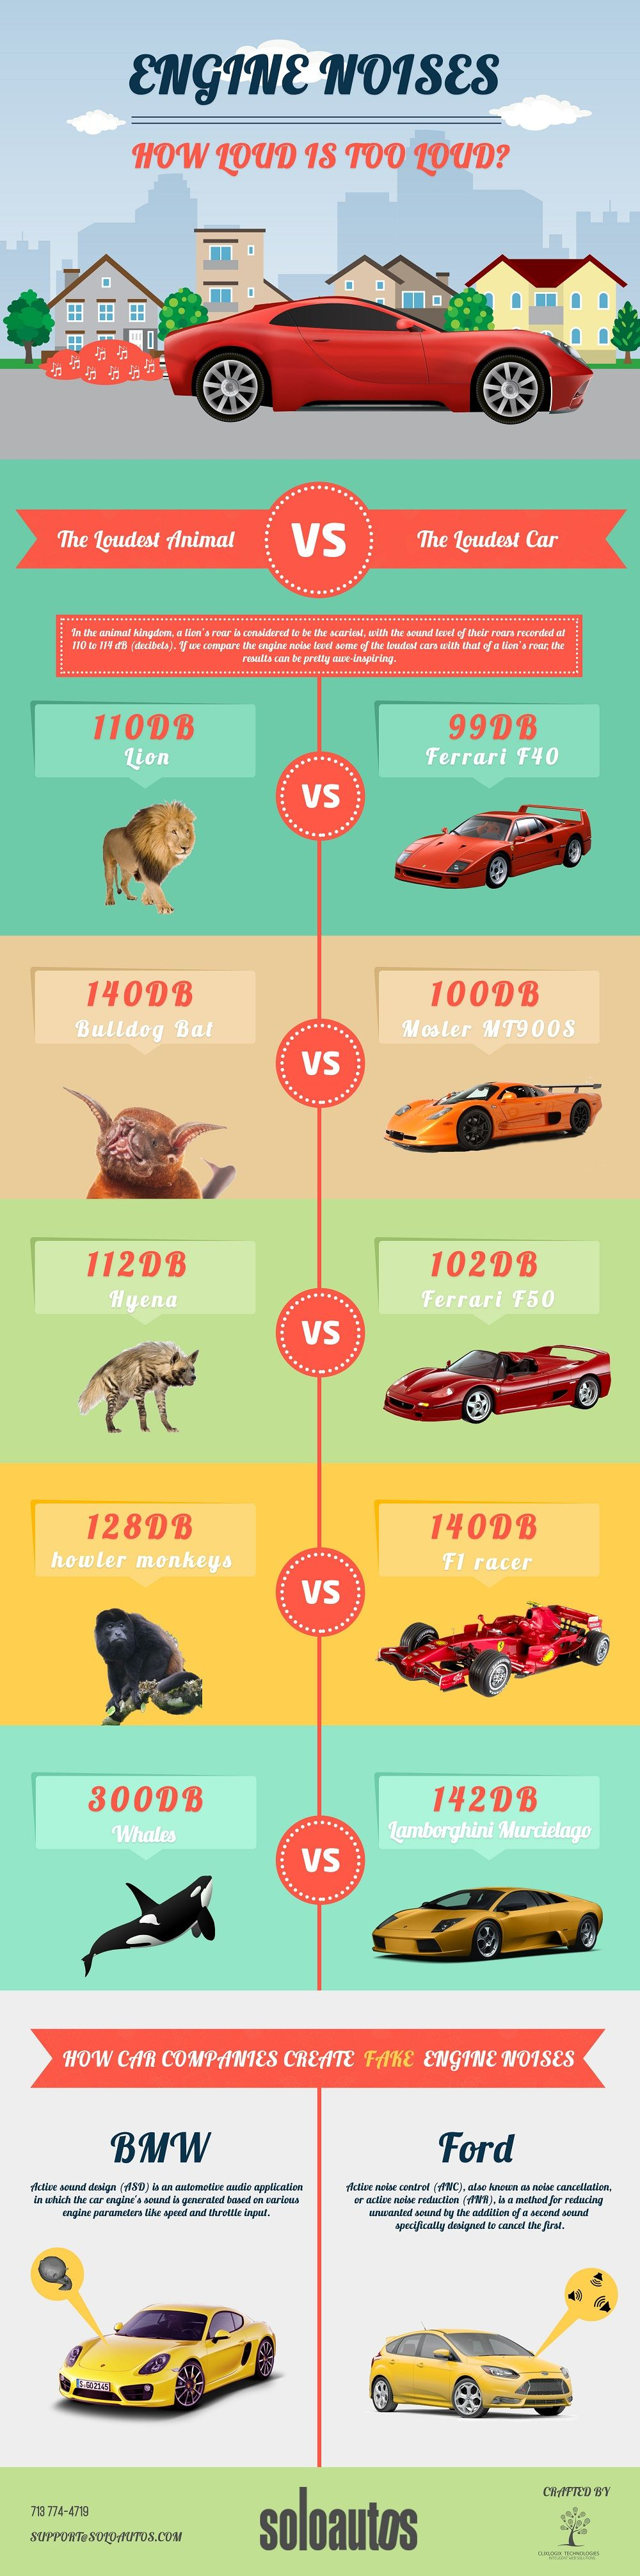 Car Engine Noises: How Loud is Too Loud #infographic